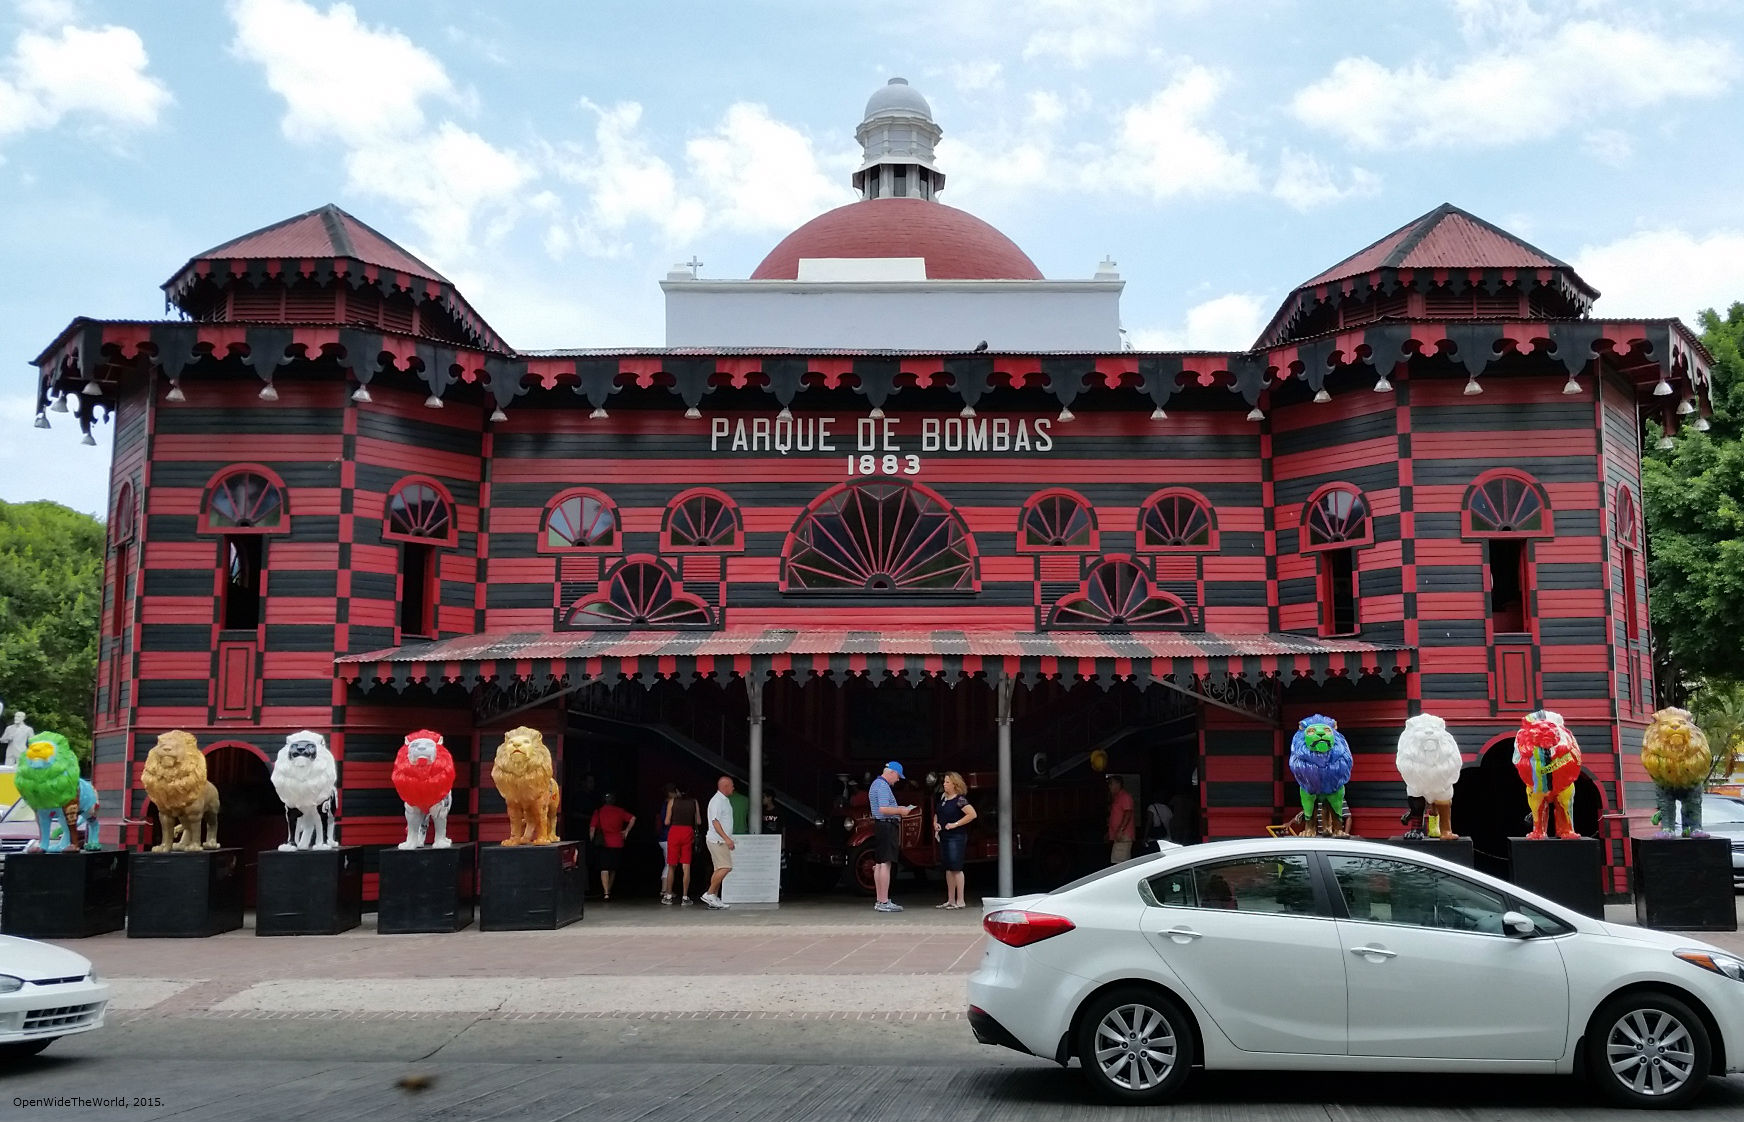 Parque de Bombas, Puerto Rico's very first fire station, was originally built as a fair exhibit hall. It was converted to a fire station in 1885, and maintained that function for more than 100 years.